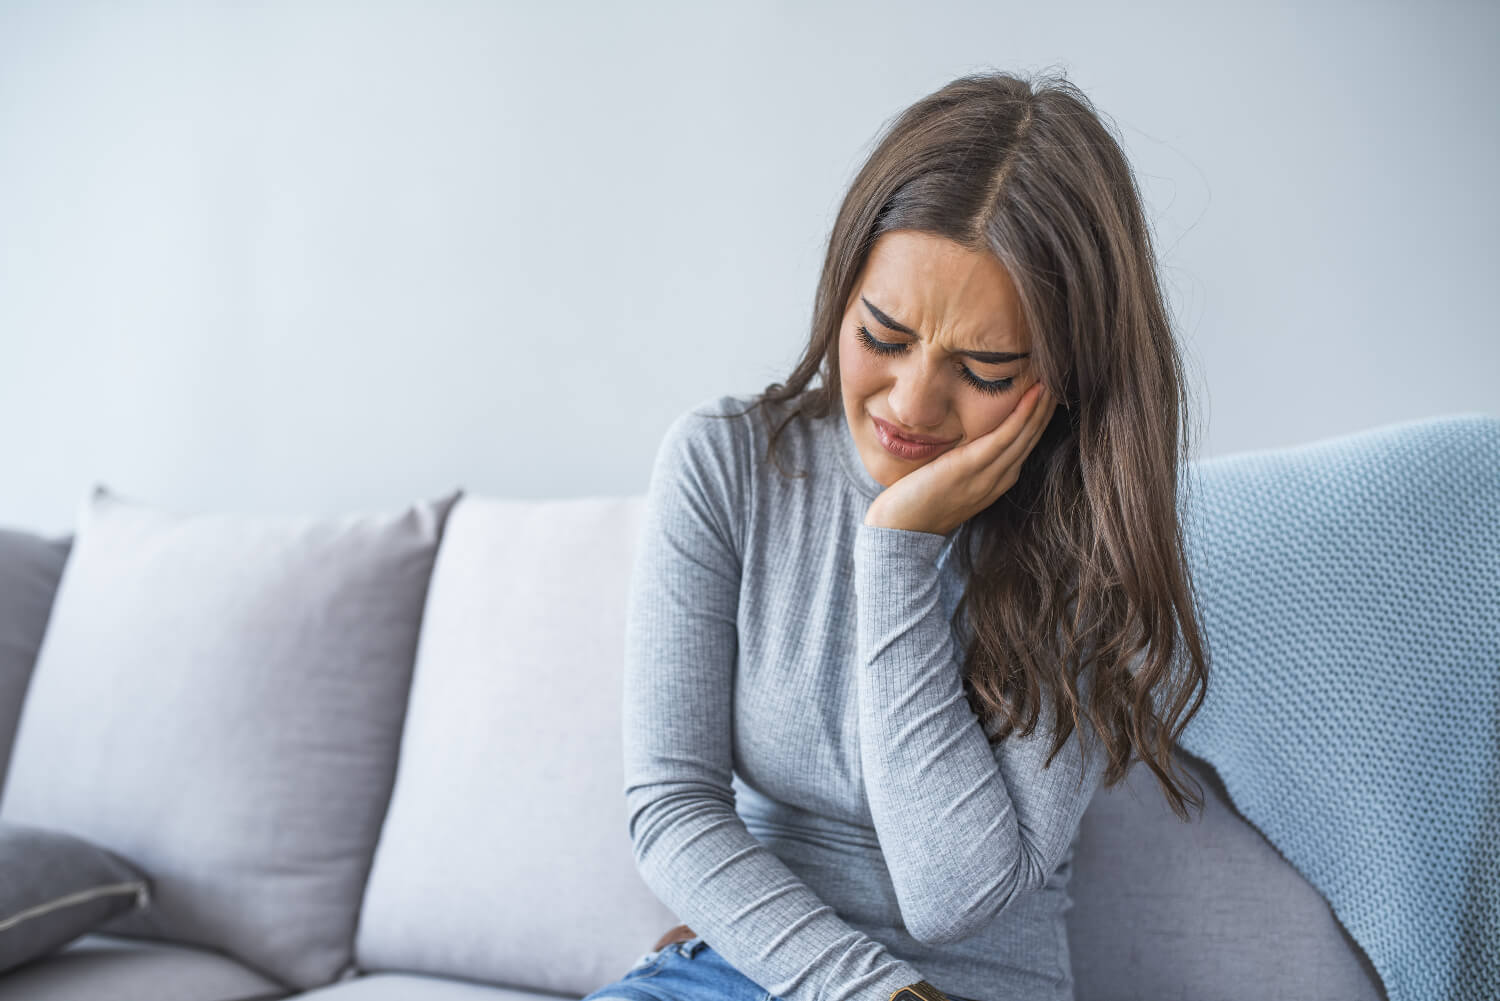 Woman in root canal pain